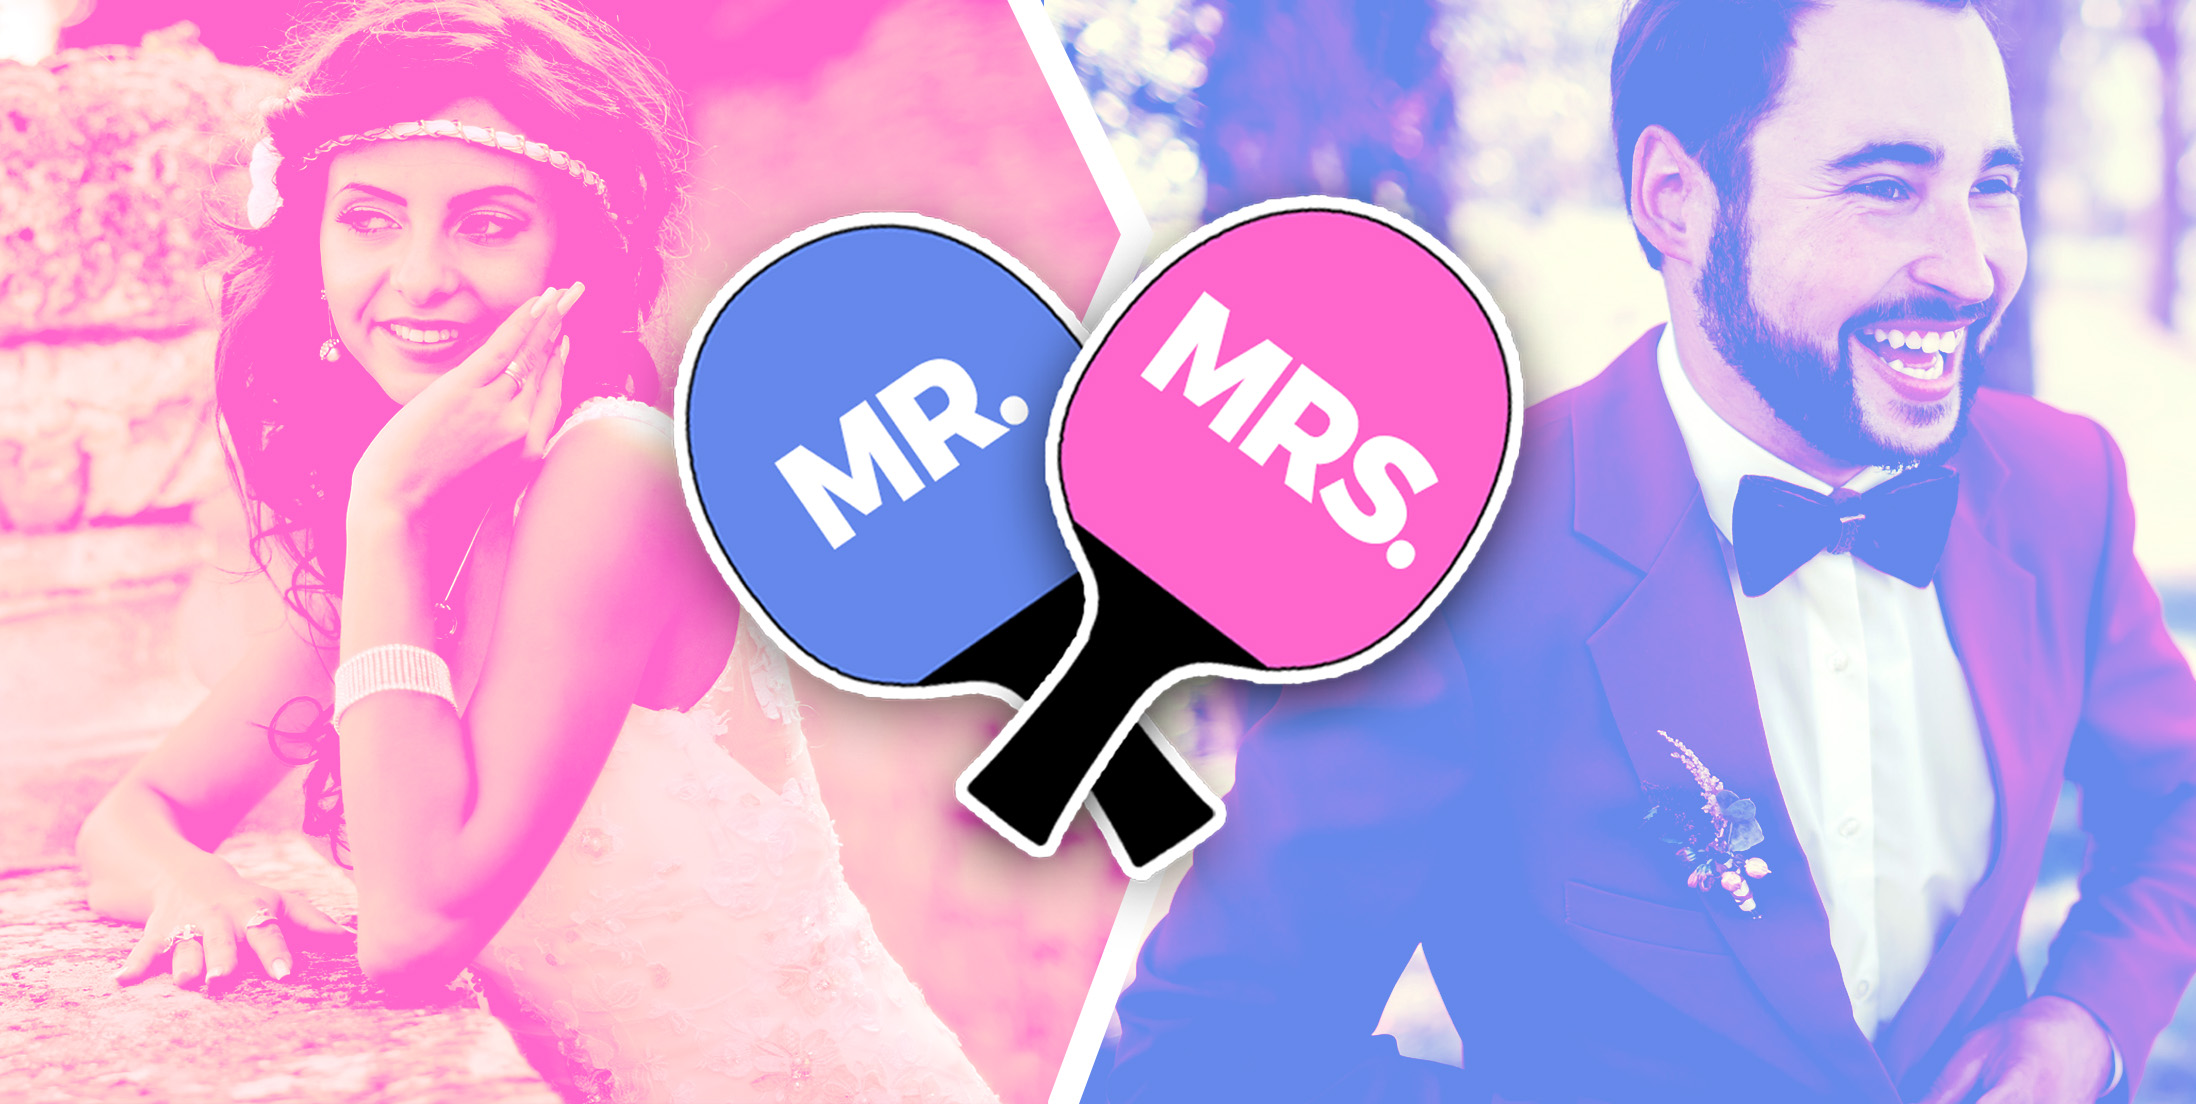 Mr And Mrs Paddle Questions: Mr & Mrs Paddle Questions Game